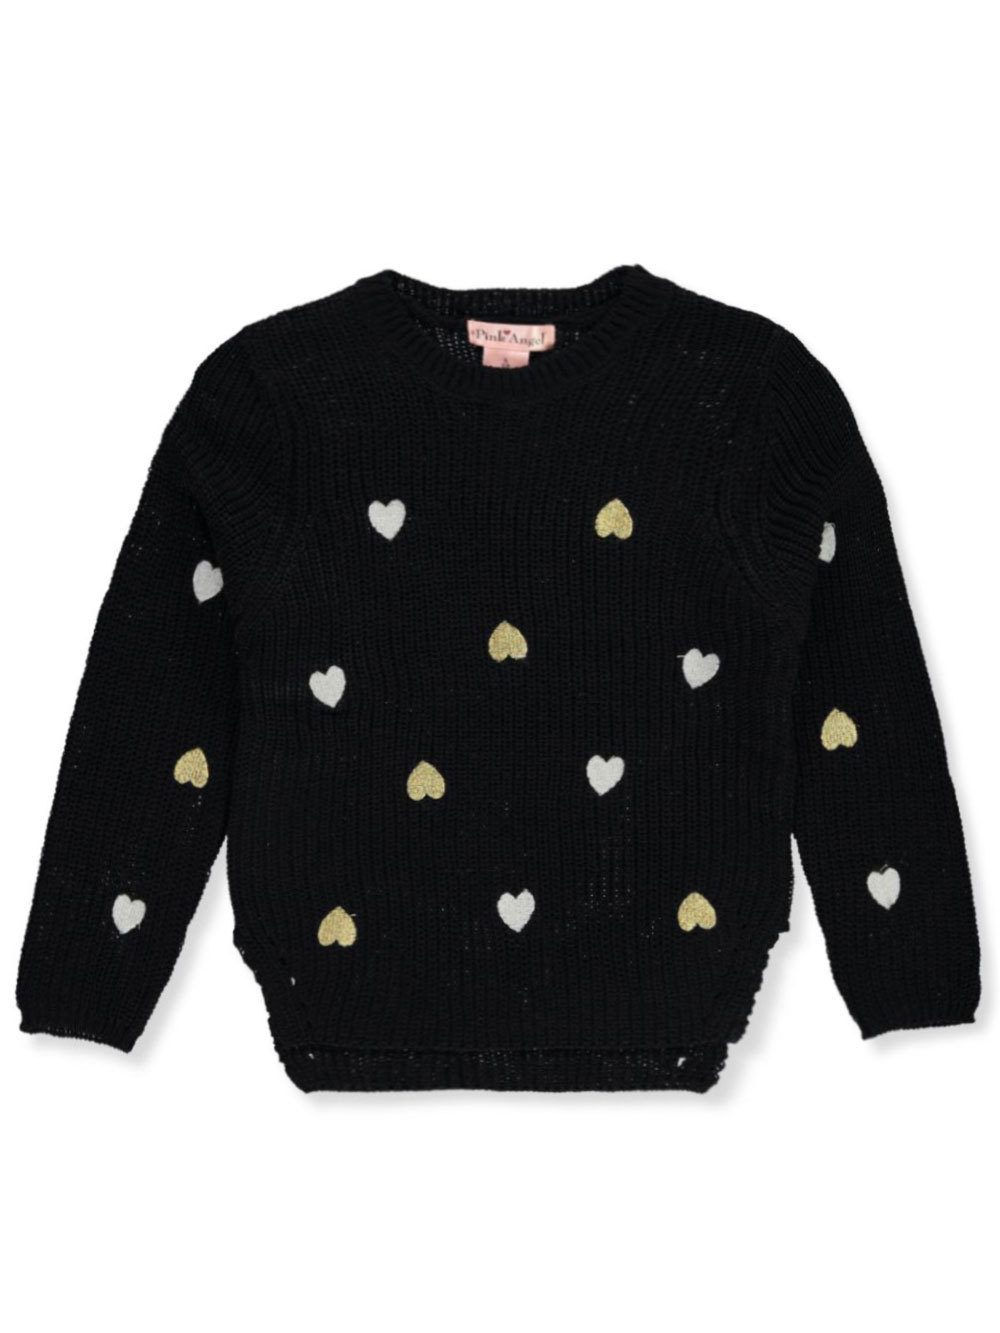 Size 4t Sweaters for Girls